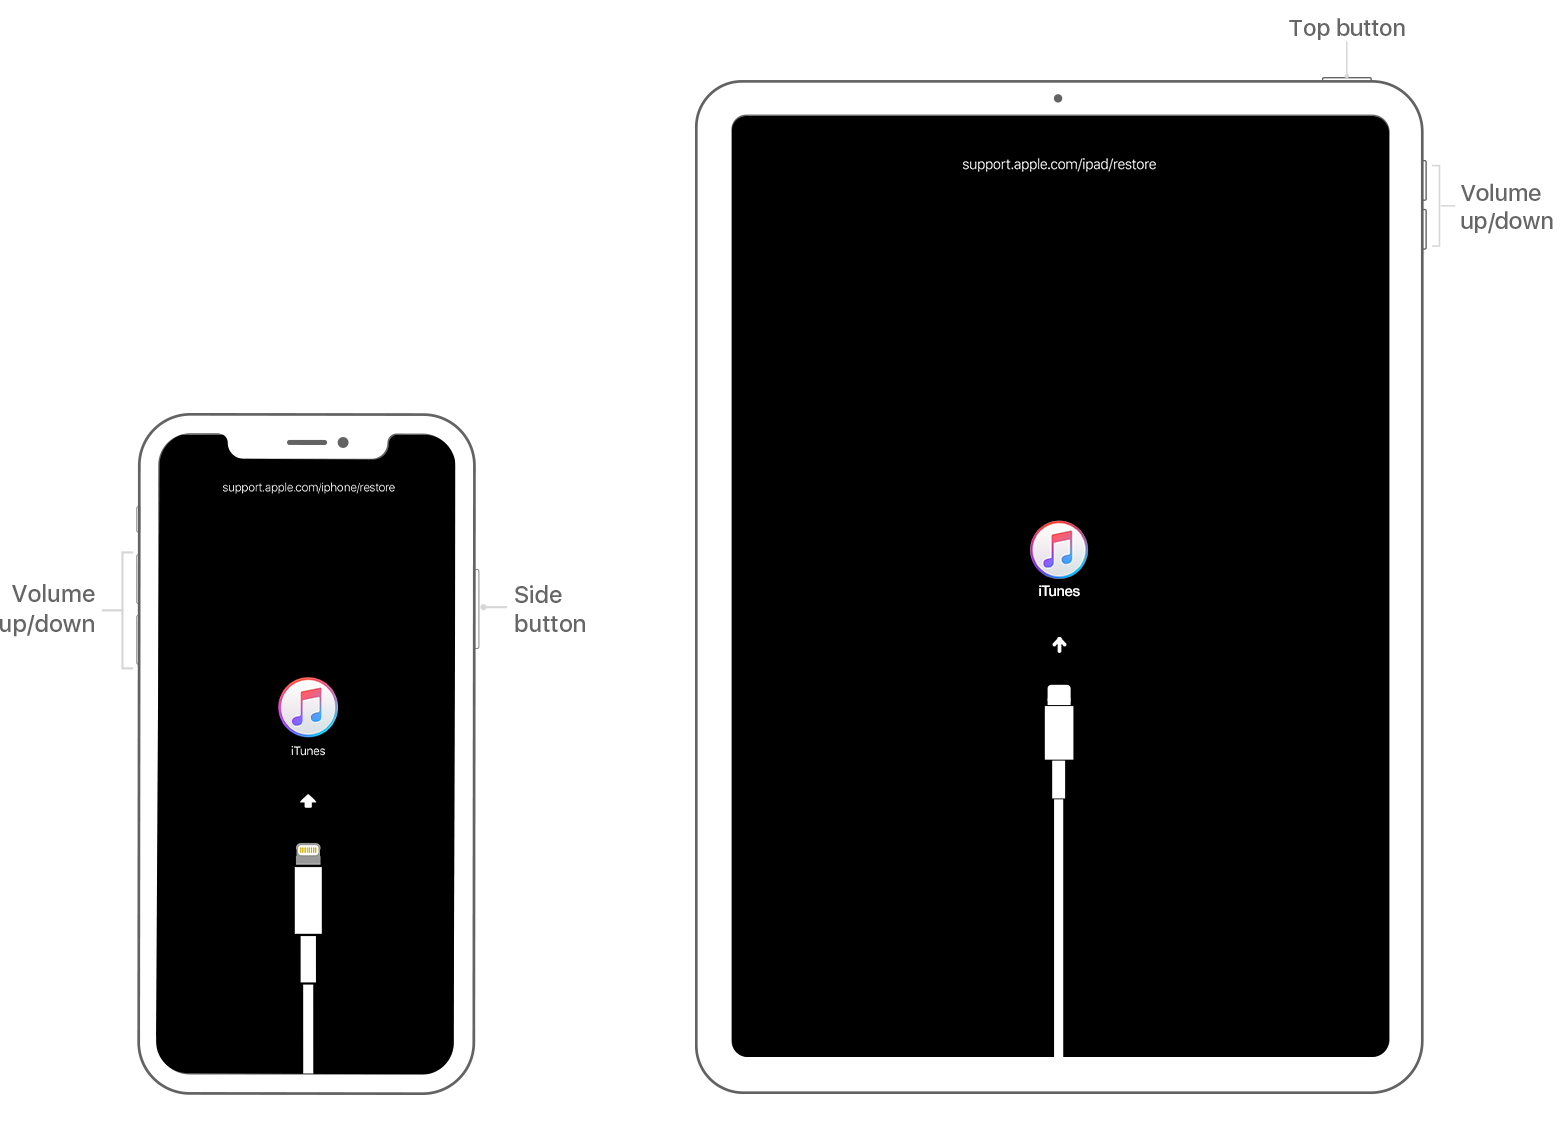 iphone-x-ipad-pro-3rd-gen-recovery-mode-tech-spec.png